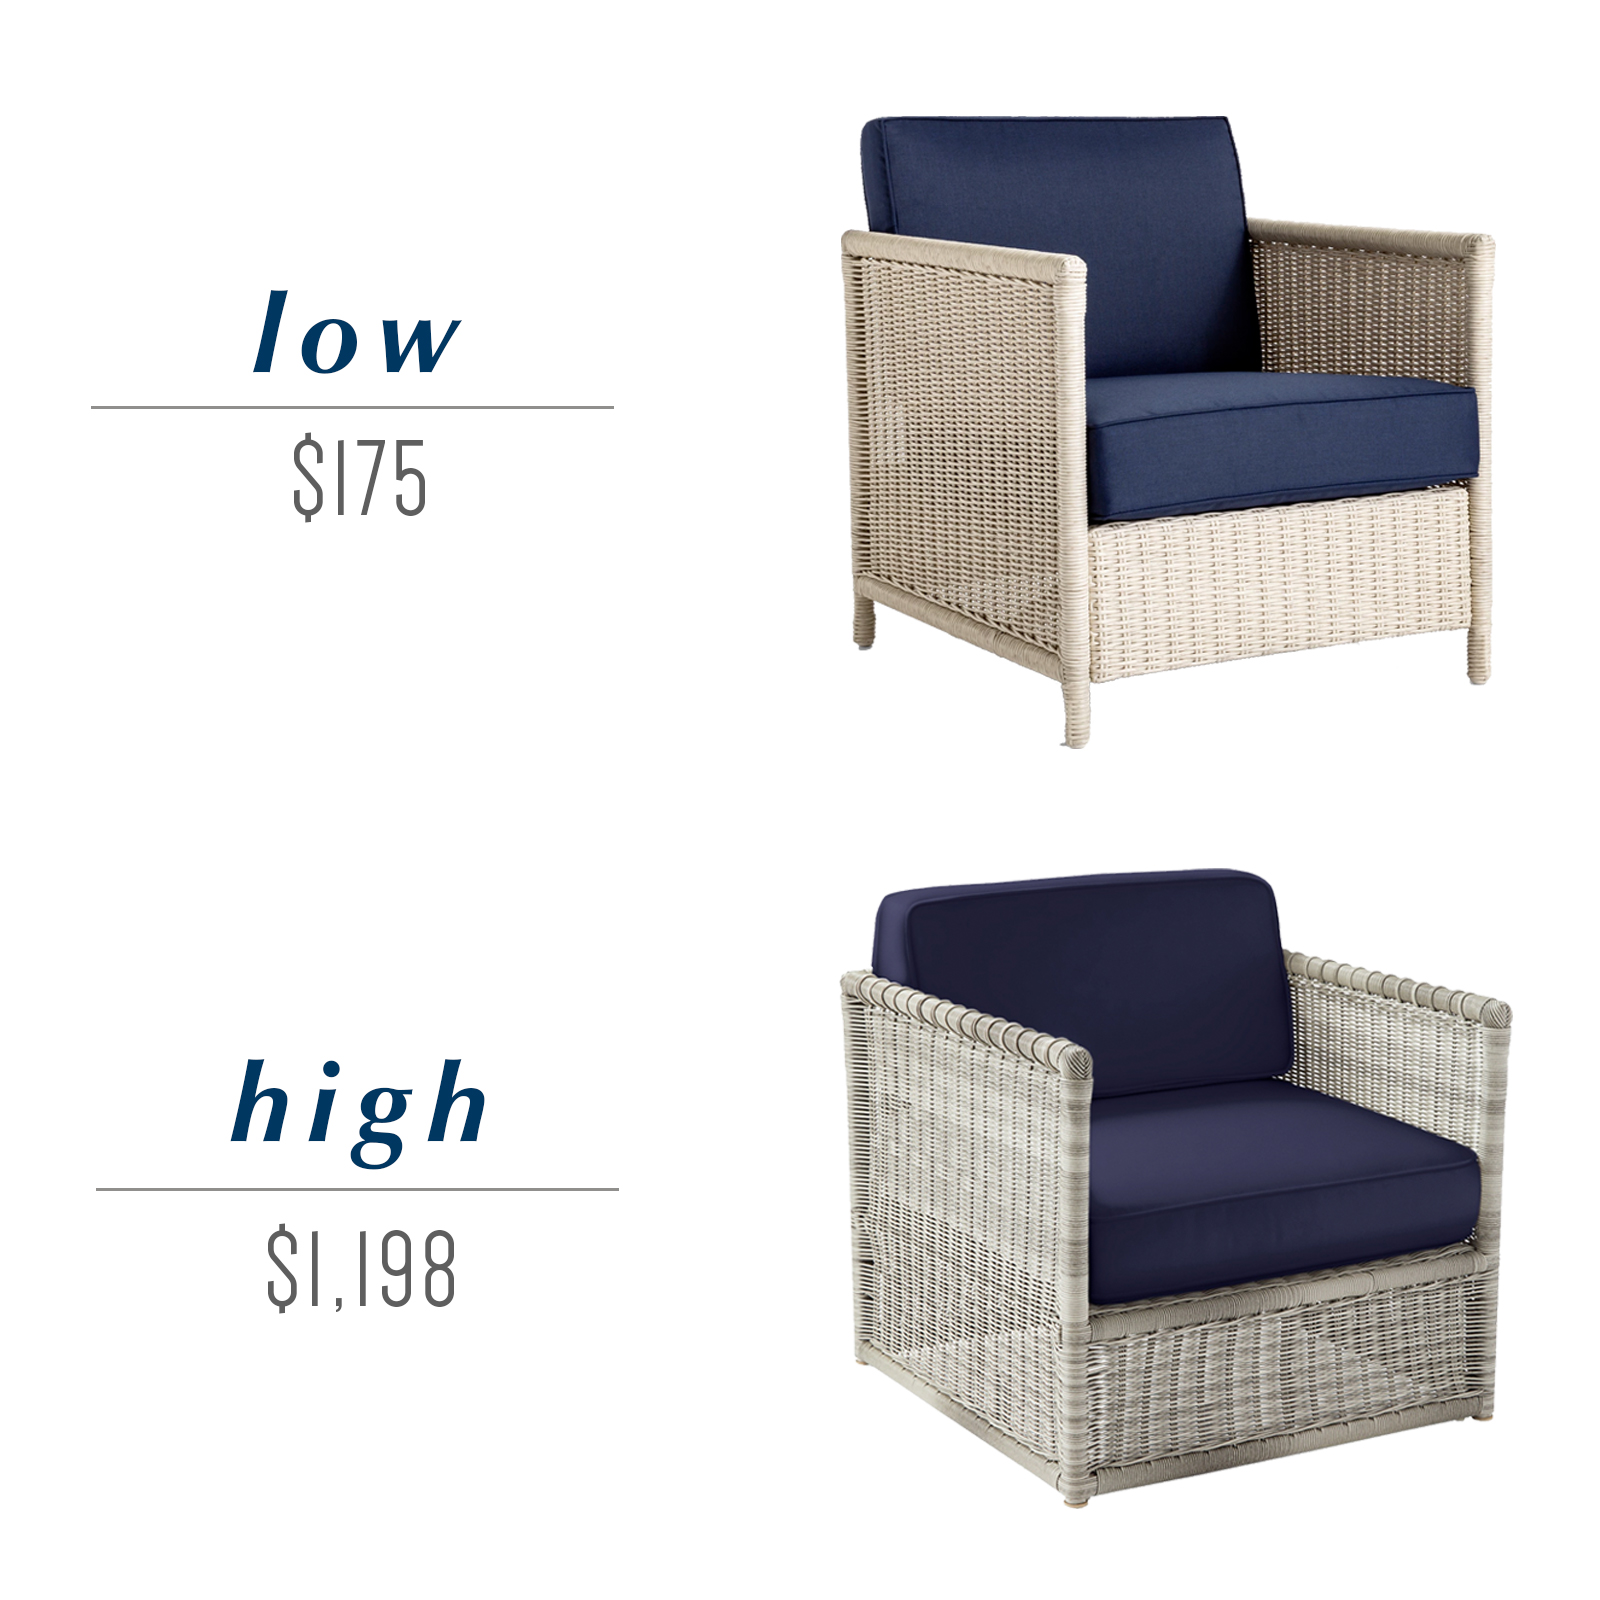 Get the look for less or decide to splurge! Come see the budget-friendly and spend-worthy pieces of furniture in this blog post including the high/low sources for this outdoor wicker patio lounge chair. I love the light tone and the navy cushion!